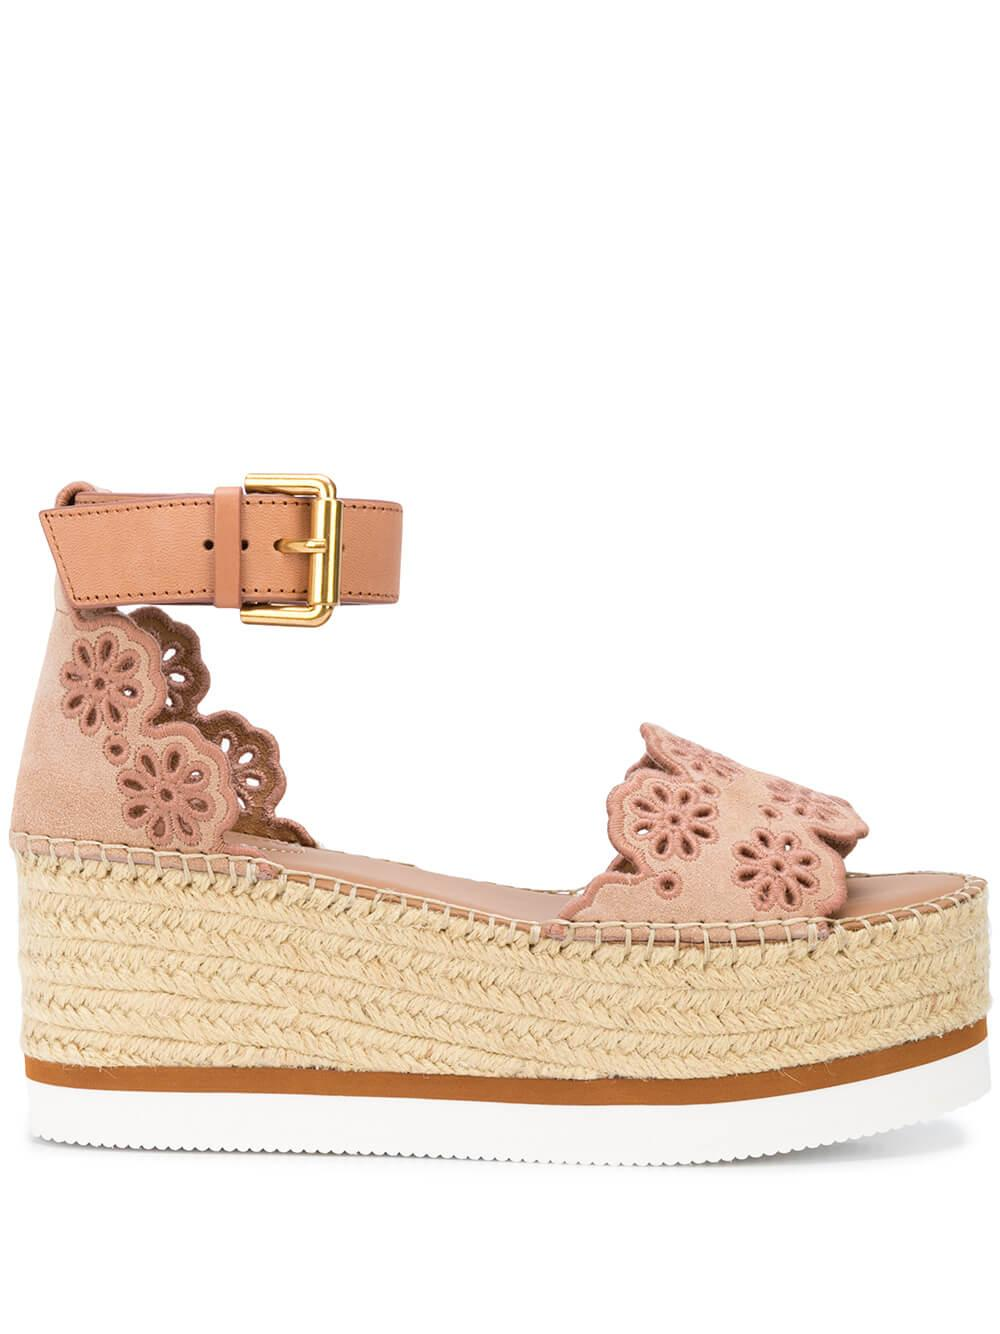 Perforated Scallop Platform Espadrille Item # SB32202A